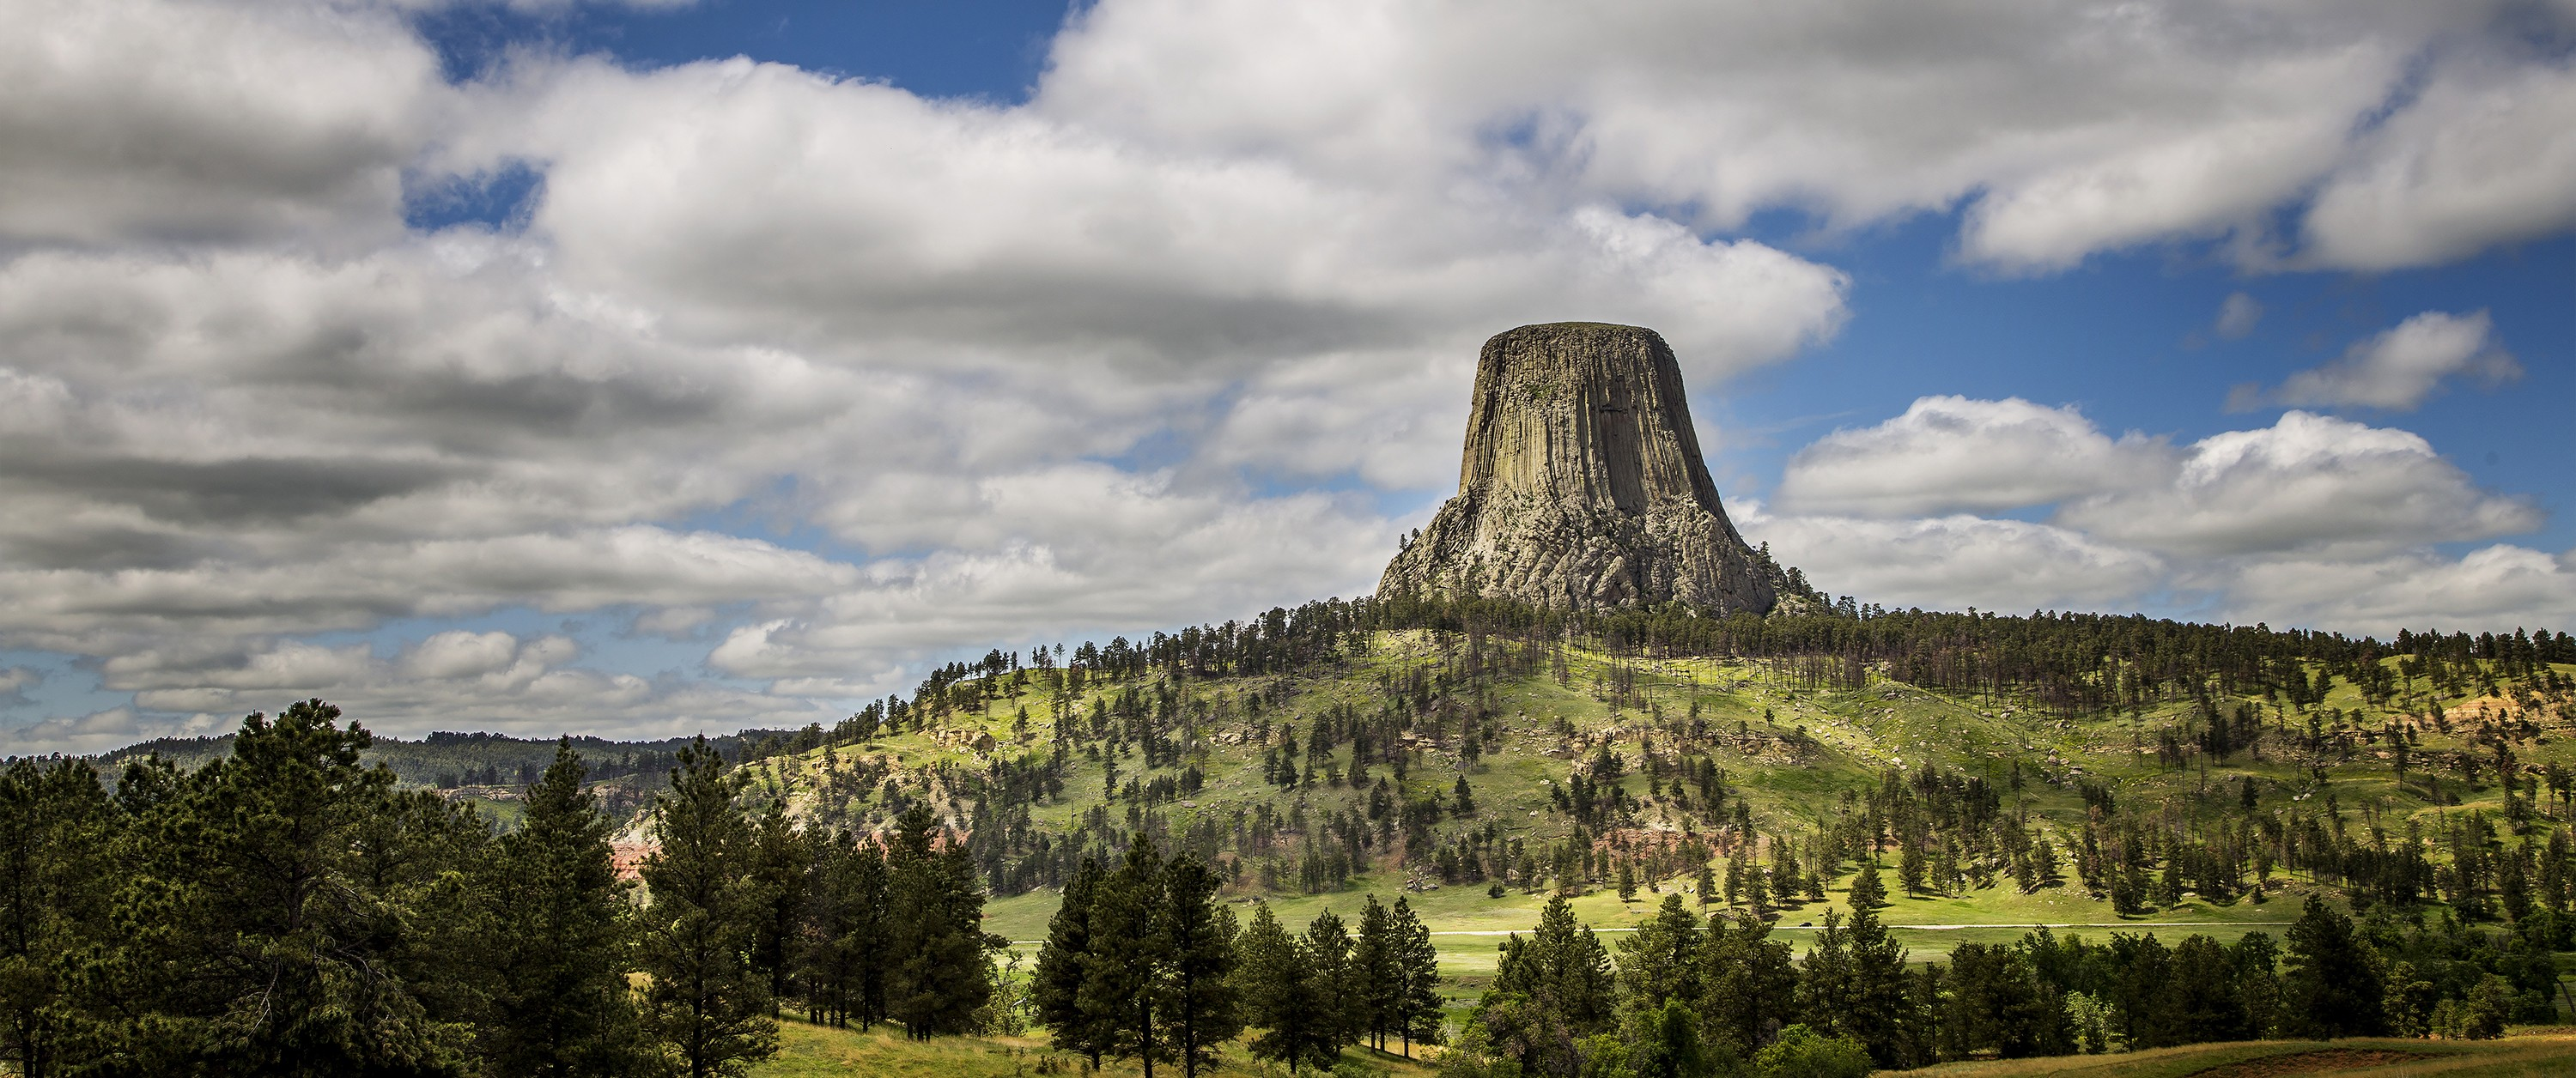 devils tower muslim dating site Early contact theories: vikings & muslims + mayans & chinese original 1893 climbing ladder to the top of devils tower national monument ( public domain.